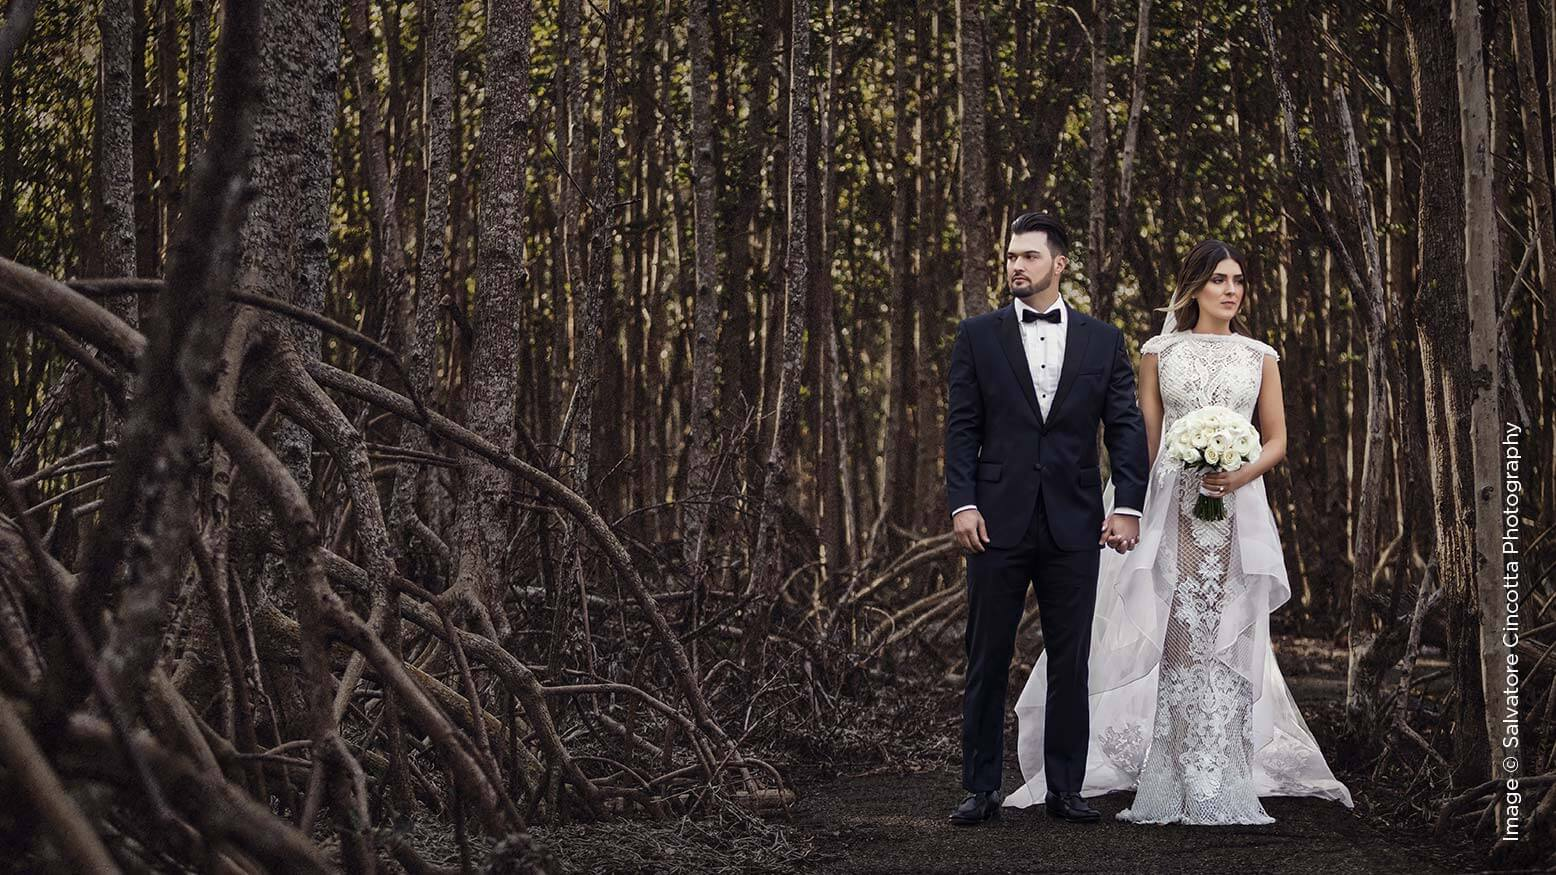 Five Ways to Up Your Wedding Game